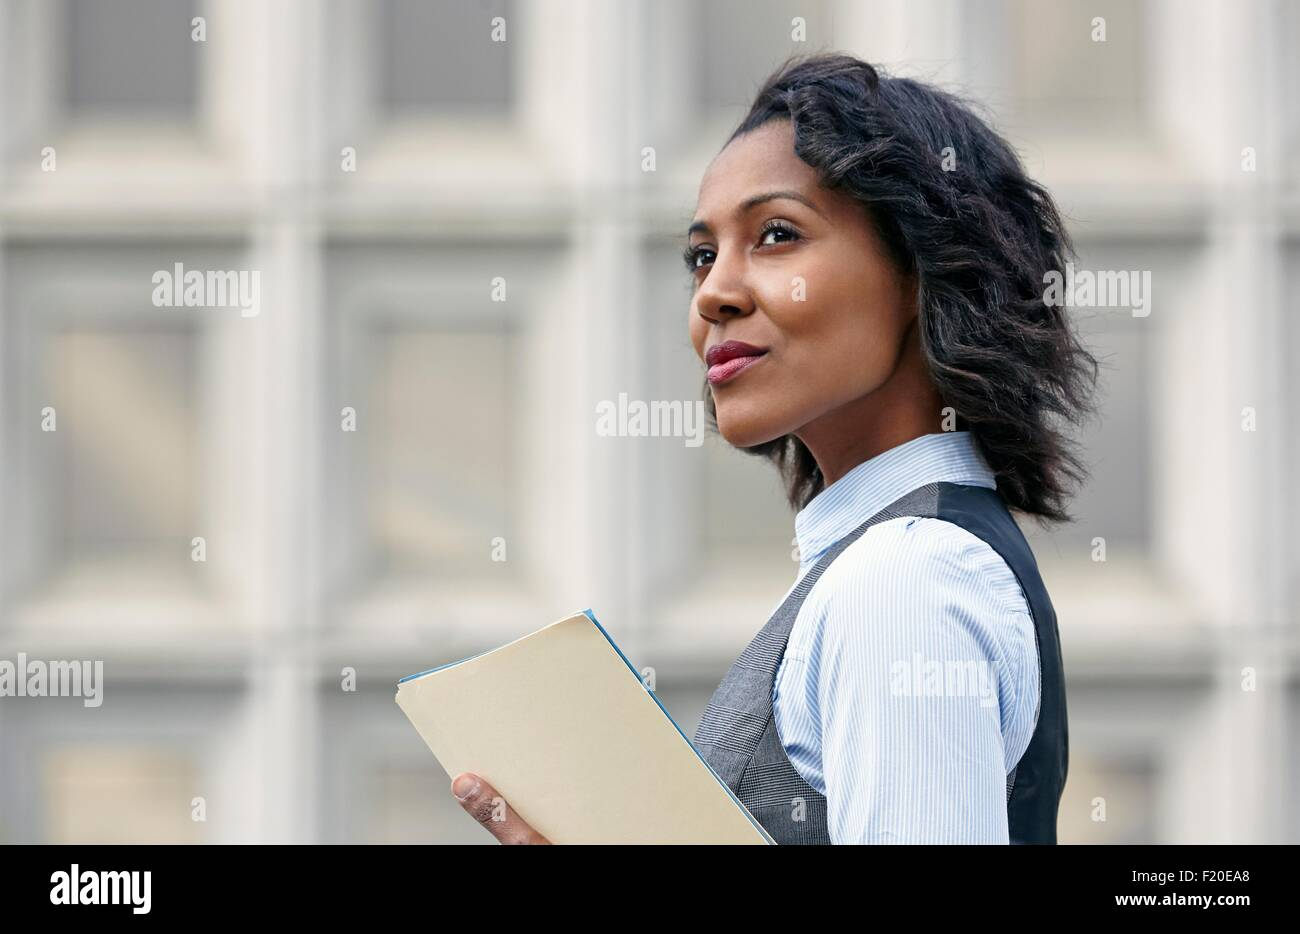 Portrait of young business woman holding paper work, looking away, side view - Stock Image